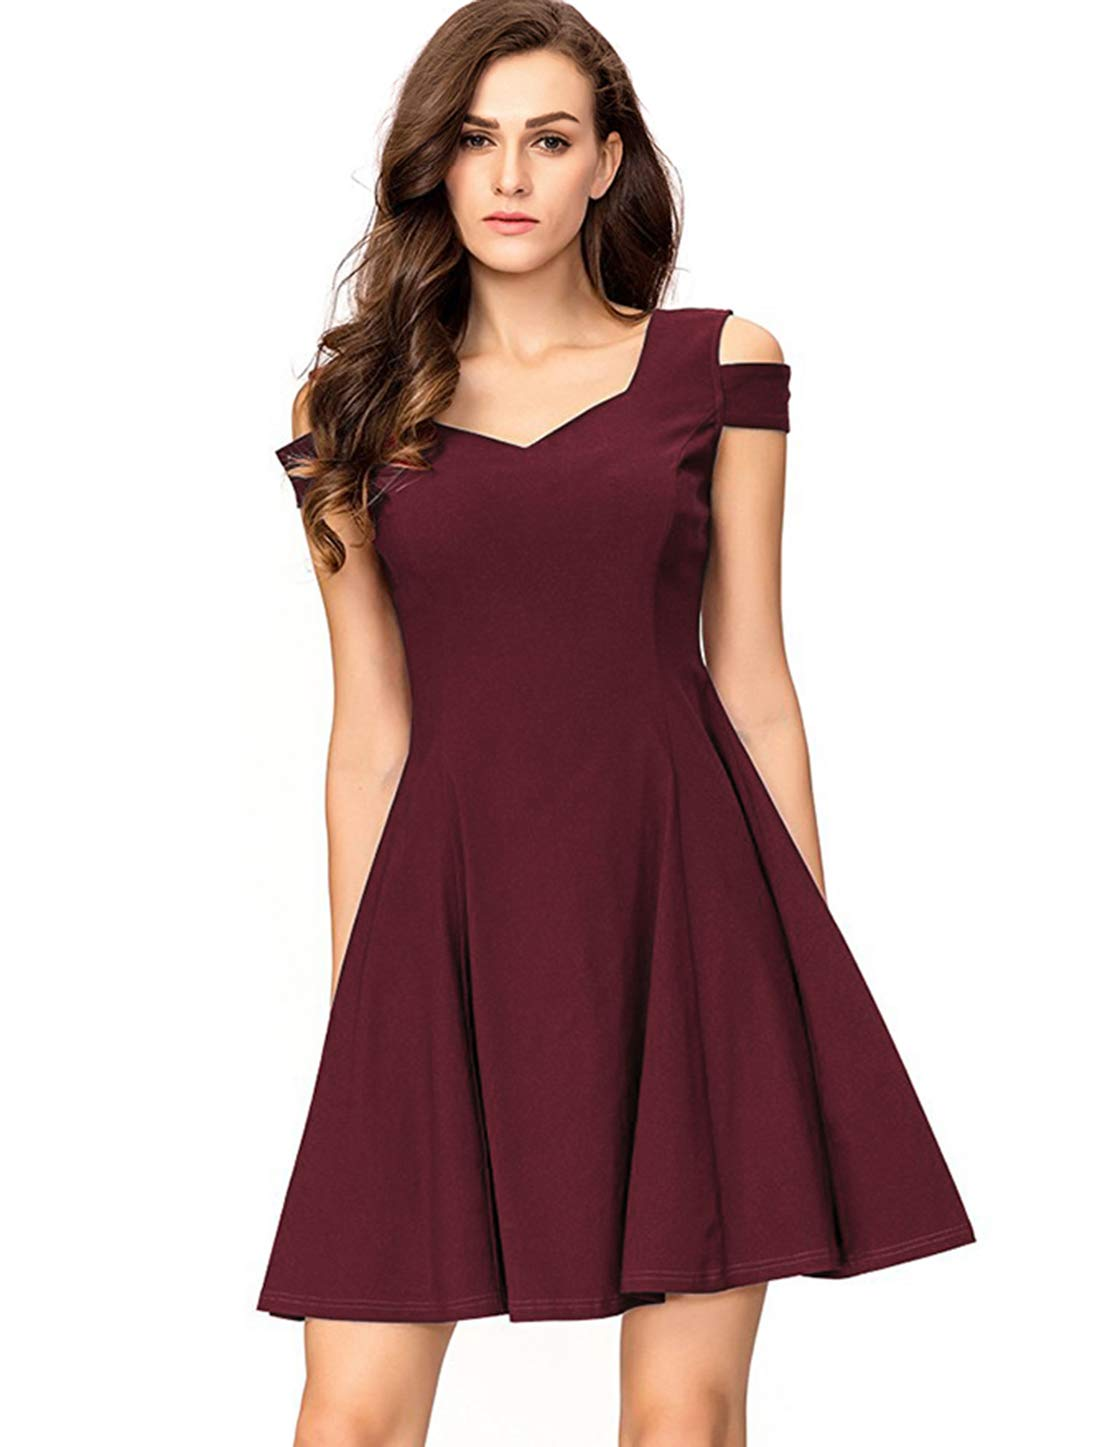 Women's Cold Shoulder Little Cocktail